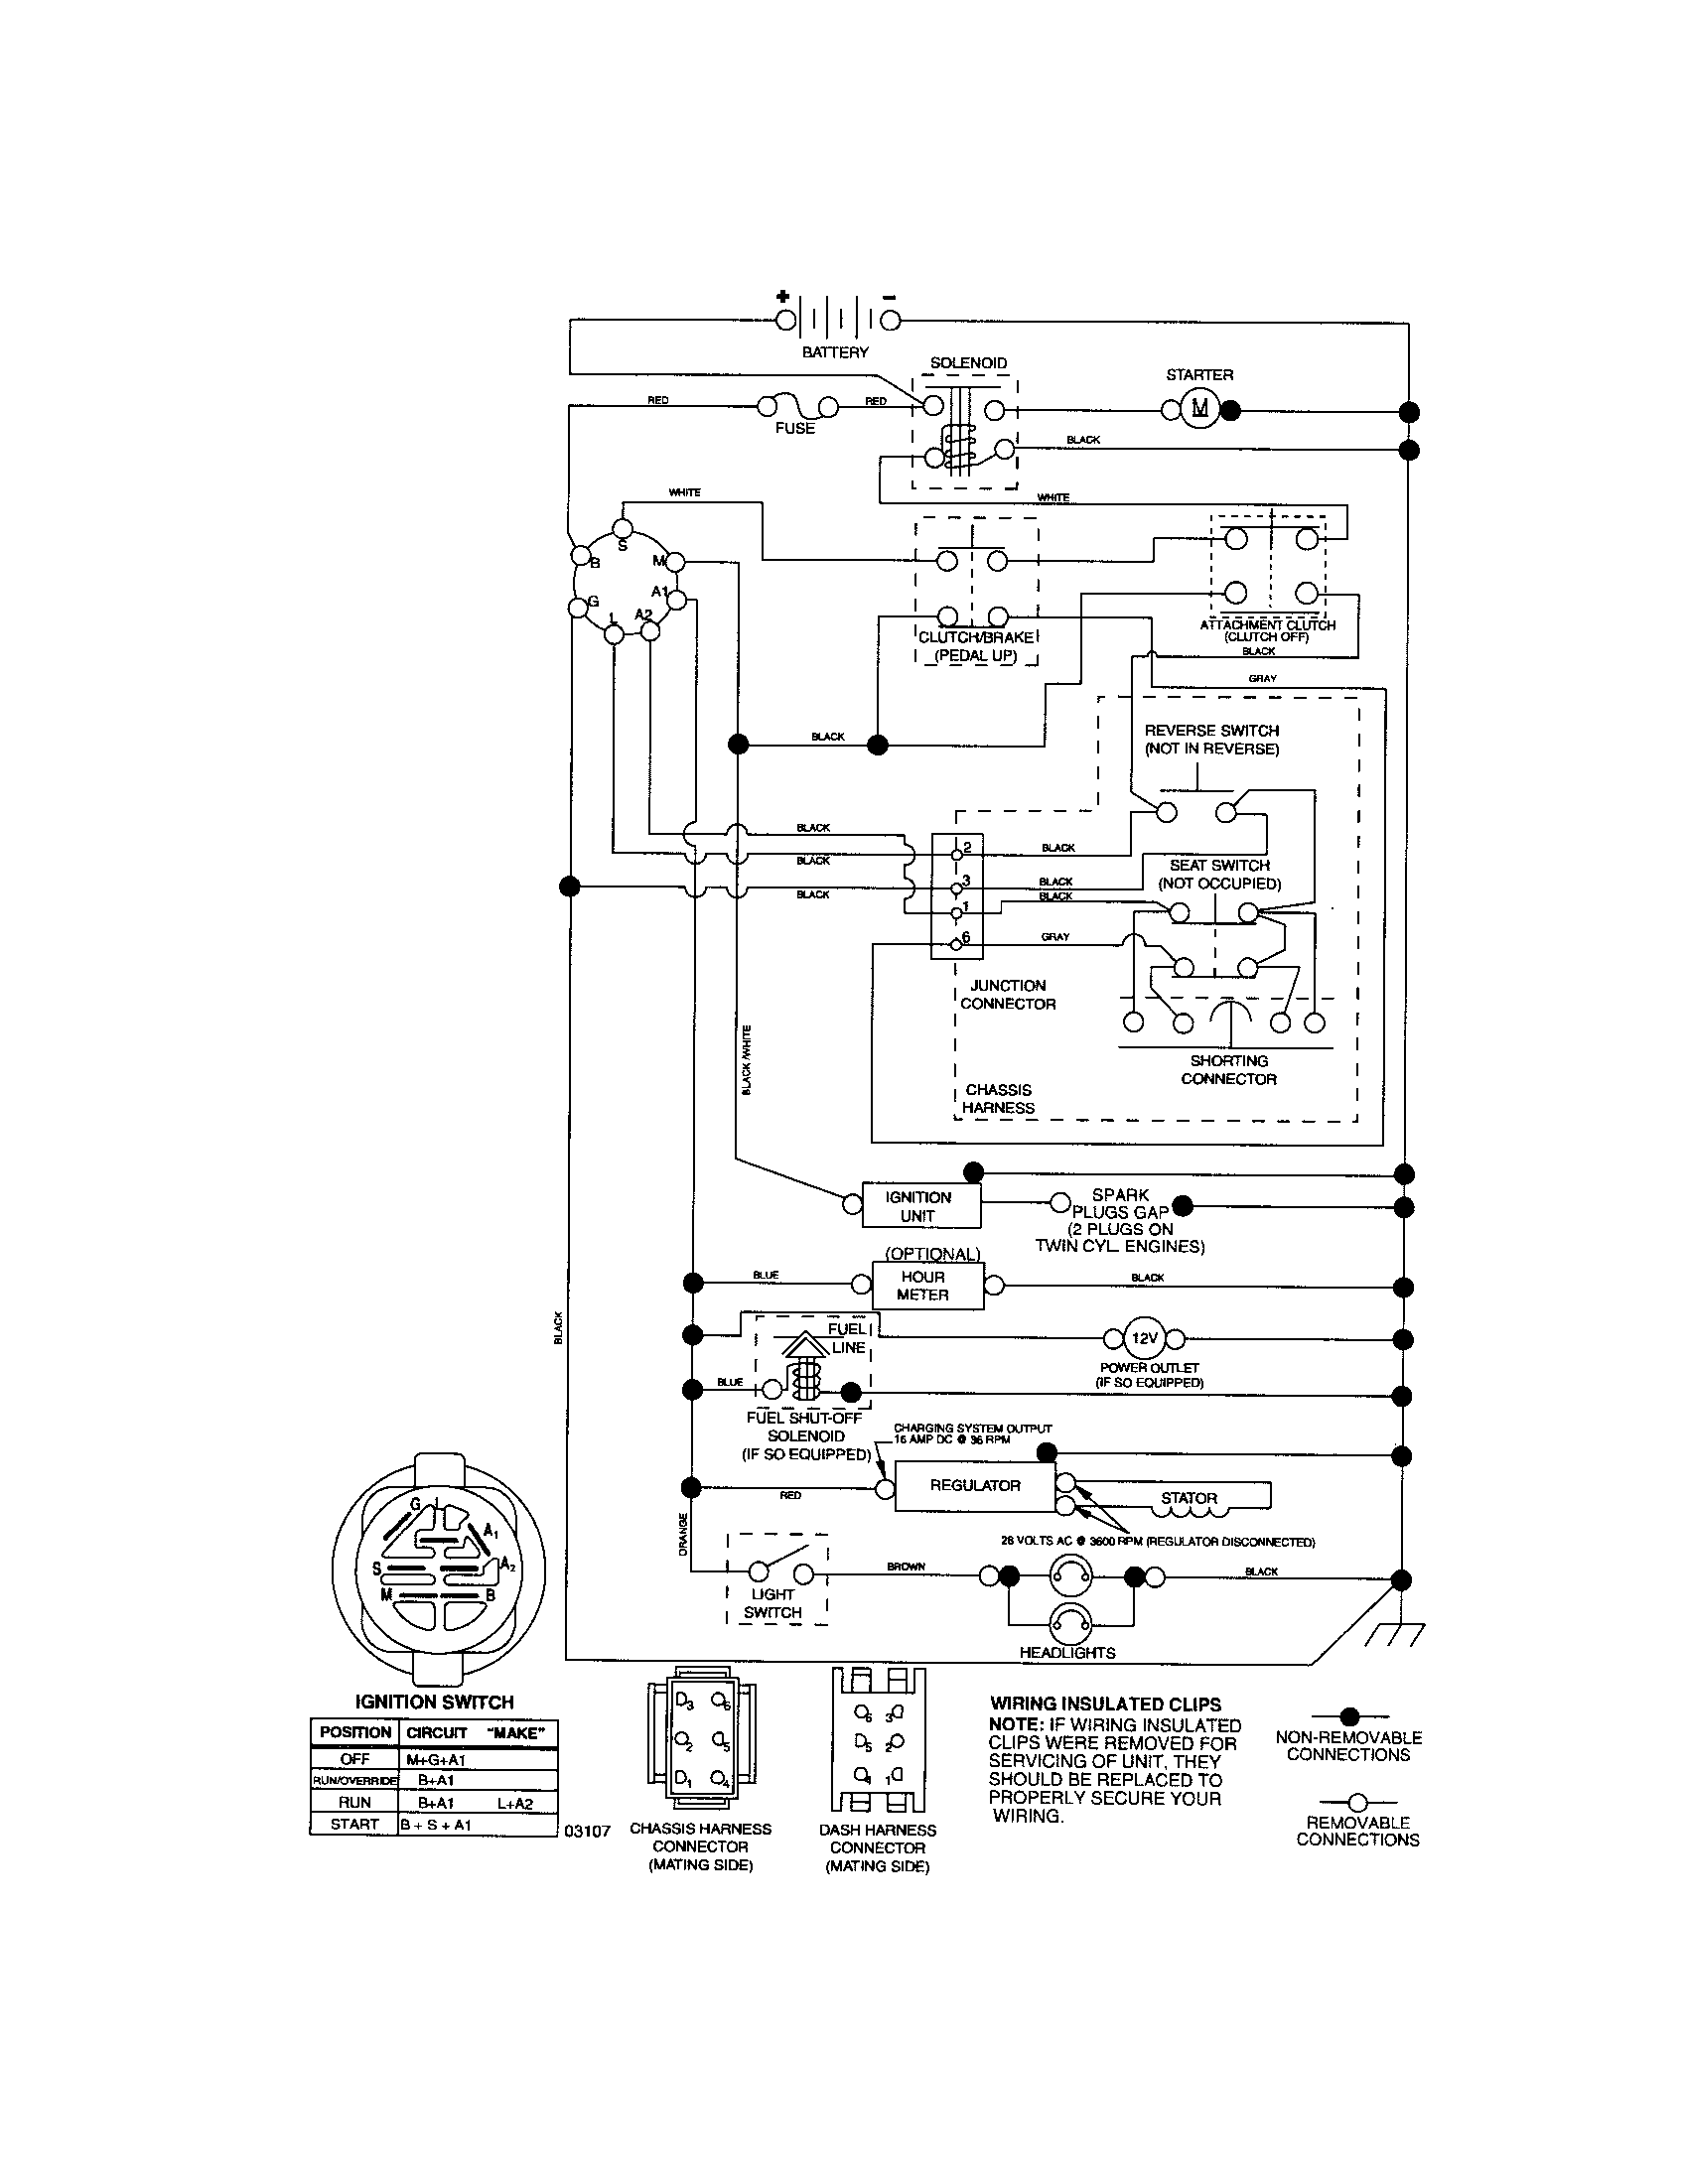 6af5f1447fd13c8443376822ddc1e105 craftsman riding mower electrical diagram wiring diagram Universal Wiring Harness Diagram at panicattacktreatment.co